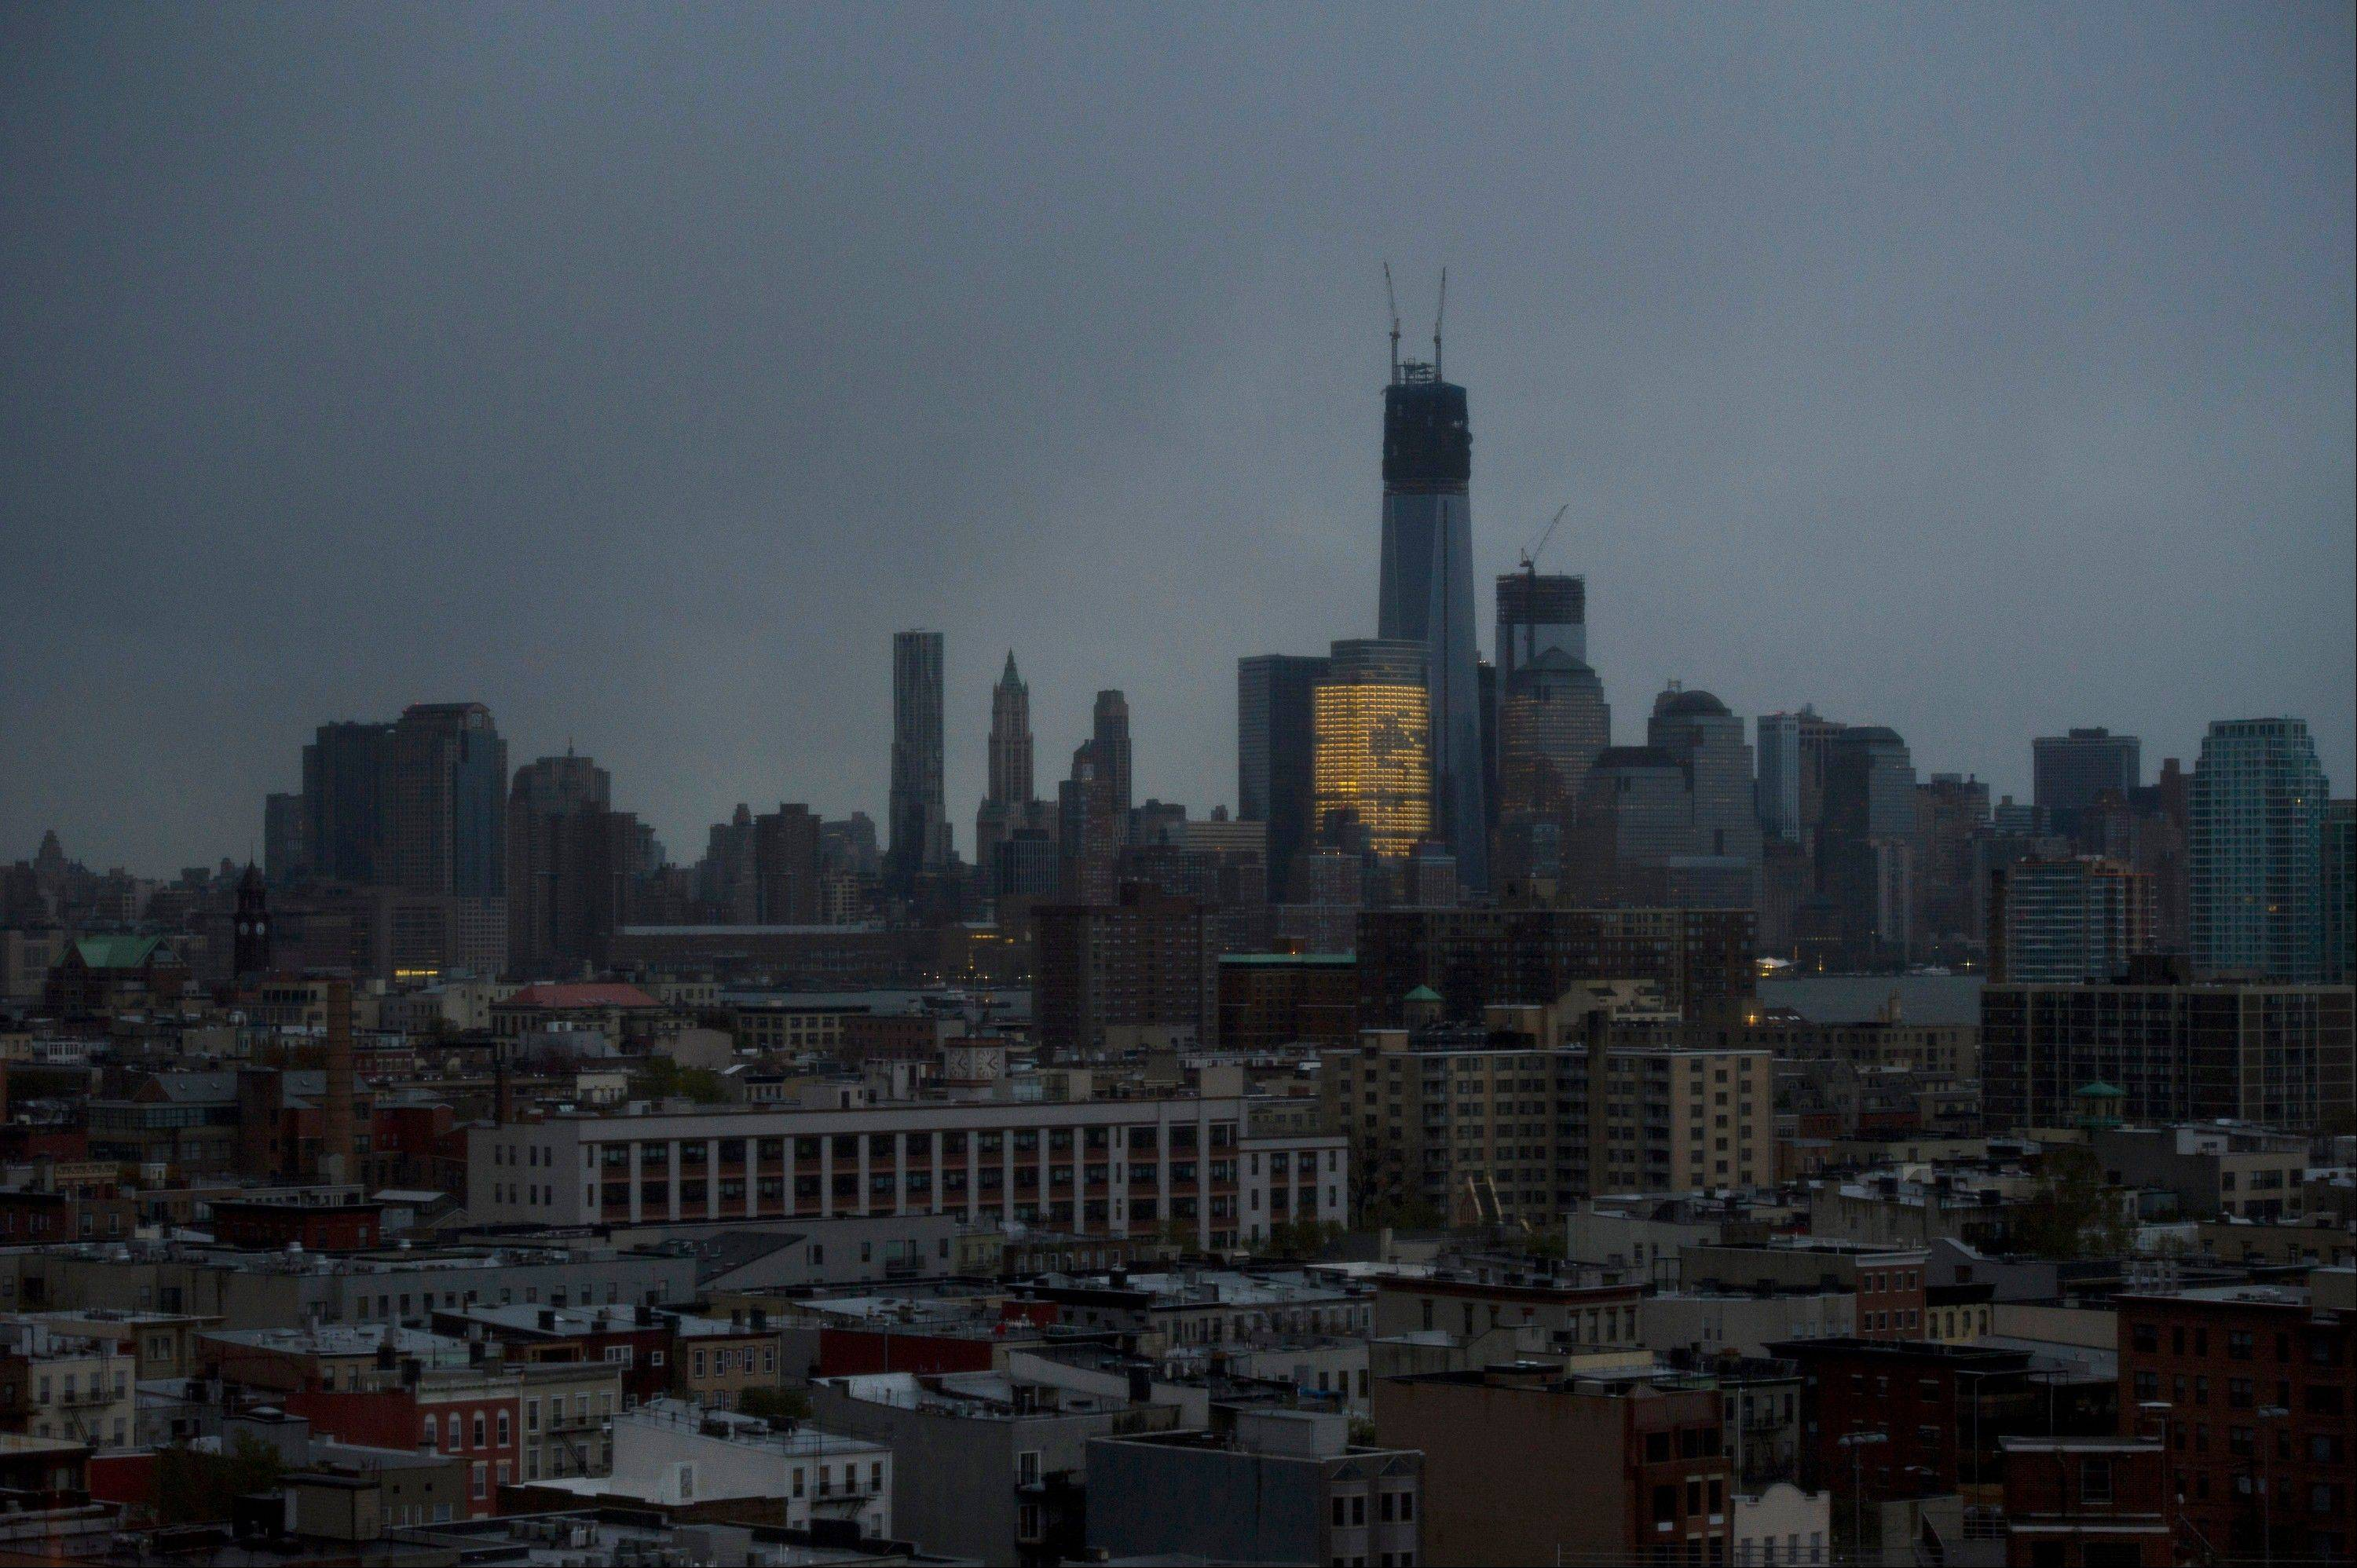 One World Trade Center and large portions of lower Manhattan and Hoboken, N.J., are seen without power from Jersey City, N.J., Tuesday, Oct. 30, 2012, the morning after a powerful storm that started out as Hurricane Sandy made landfall on the East Coast. New York City awakened Tuesday to a flooded subway system, shuttered financial markets and hundreds of thousands of people without power a day after a wall of seawater and high winds slammed into the city, destroying buildings and flooding tunnels.